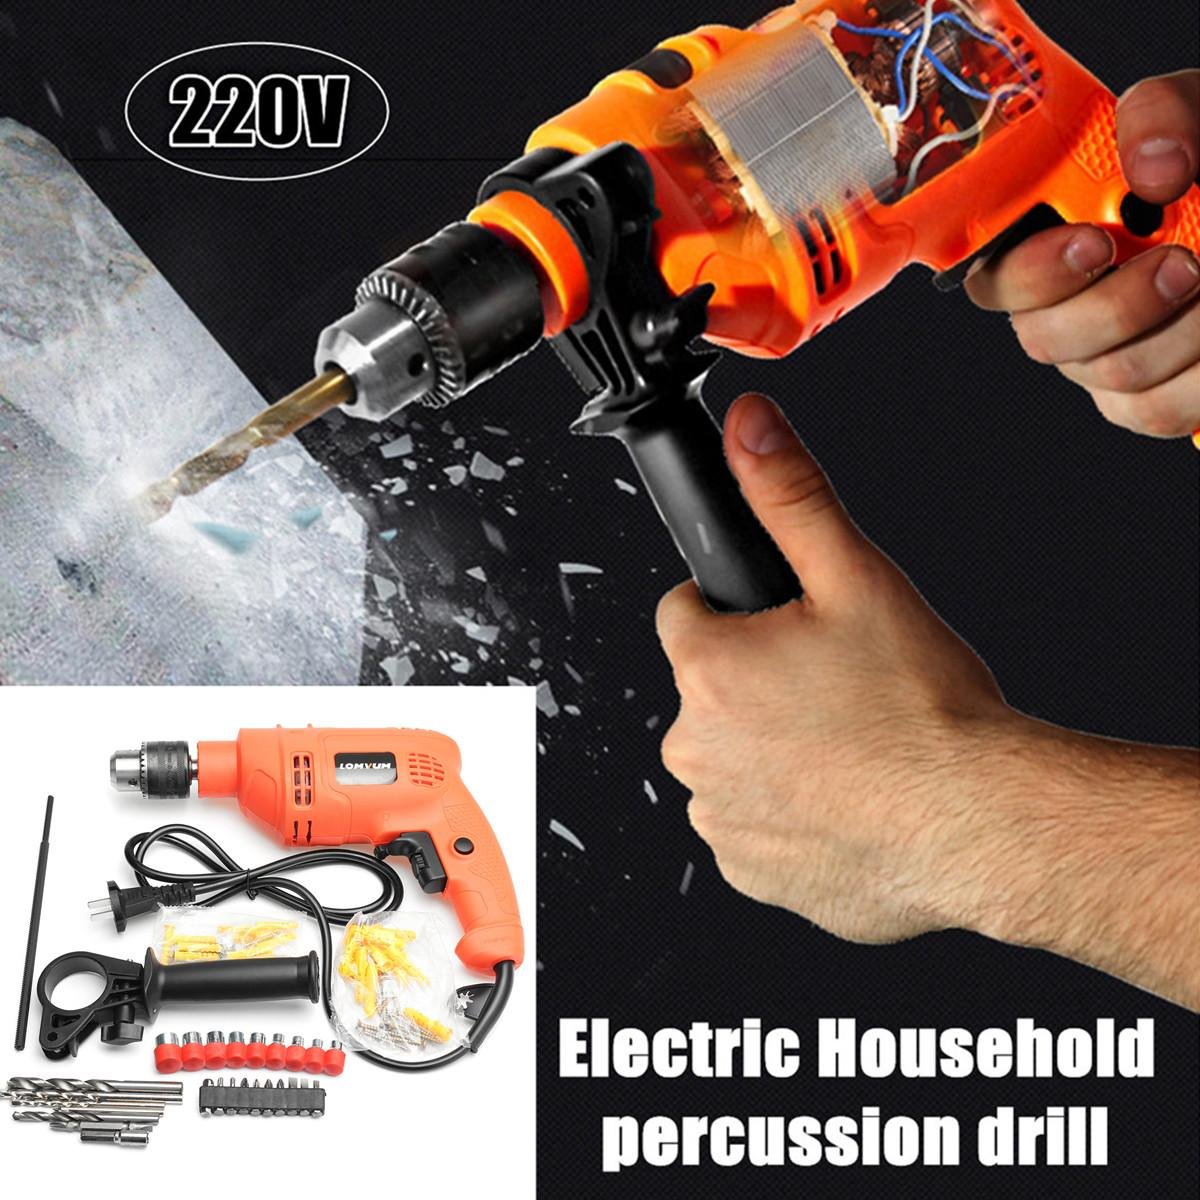 Percussion Electric Hammer Home Power Tools Impact Drill 220v Household Drill Multifunction Rotary Tool Drill ScrewdriverPercussion Electric Hammer Home Power Tools Impact Drill 220v Household Drill Multifunction Rotary Tool Drill Screwdriver